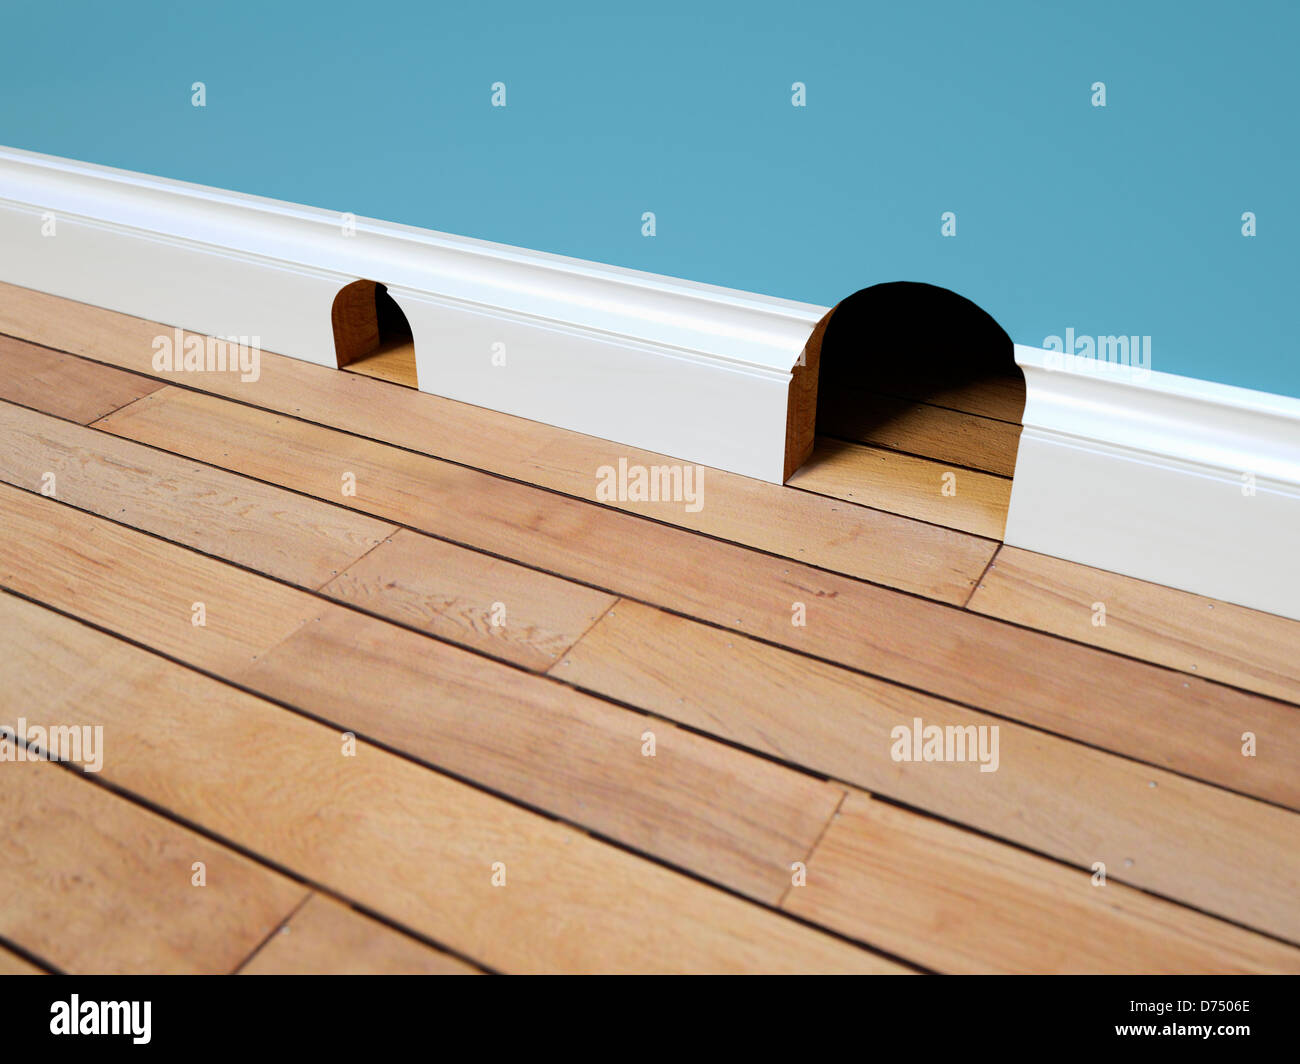 Two mouse holes - property real estate concept / trading up / up sizing / down sizing concept - Stock Image